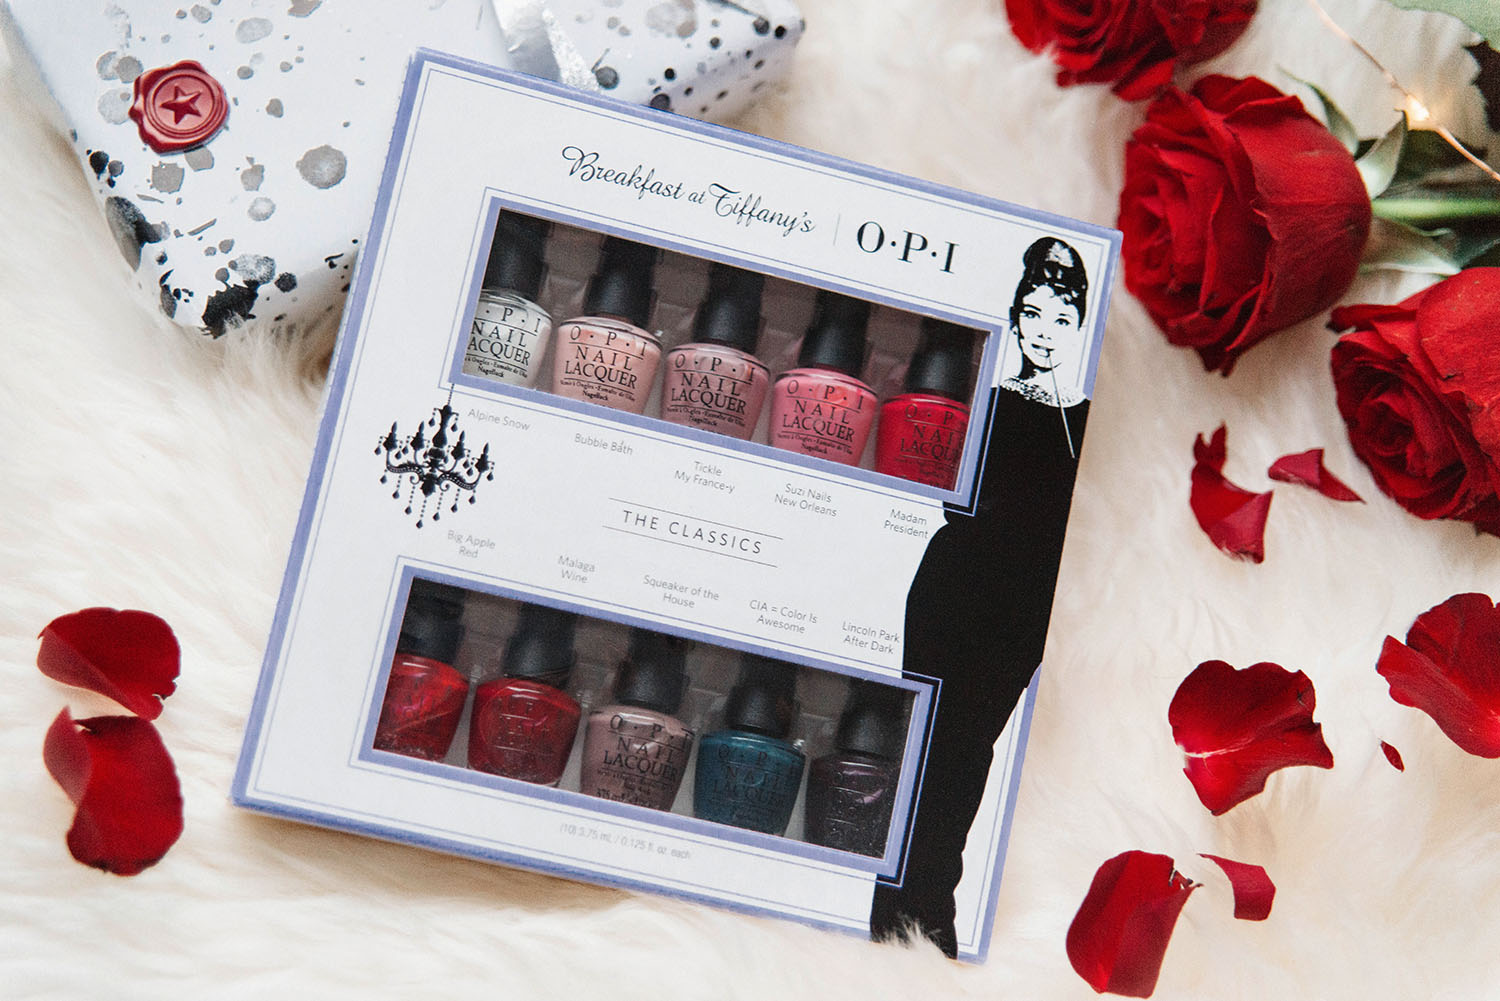 Flatlay with OPI Breakfast at Tiffanys pack with scattered roses